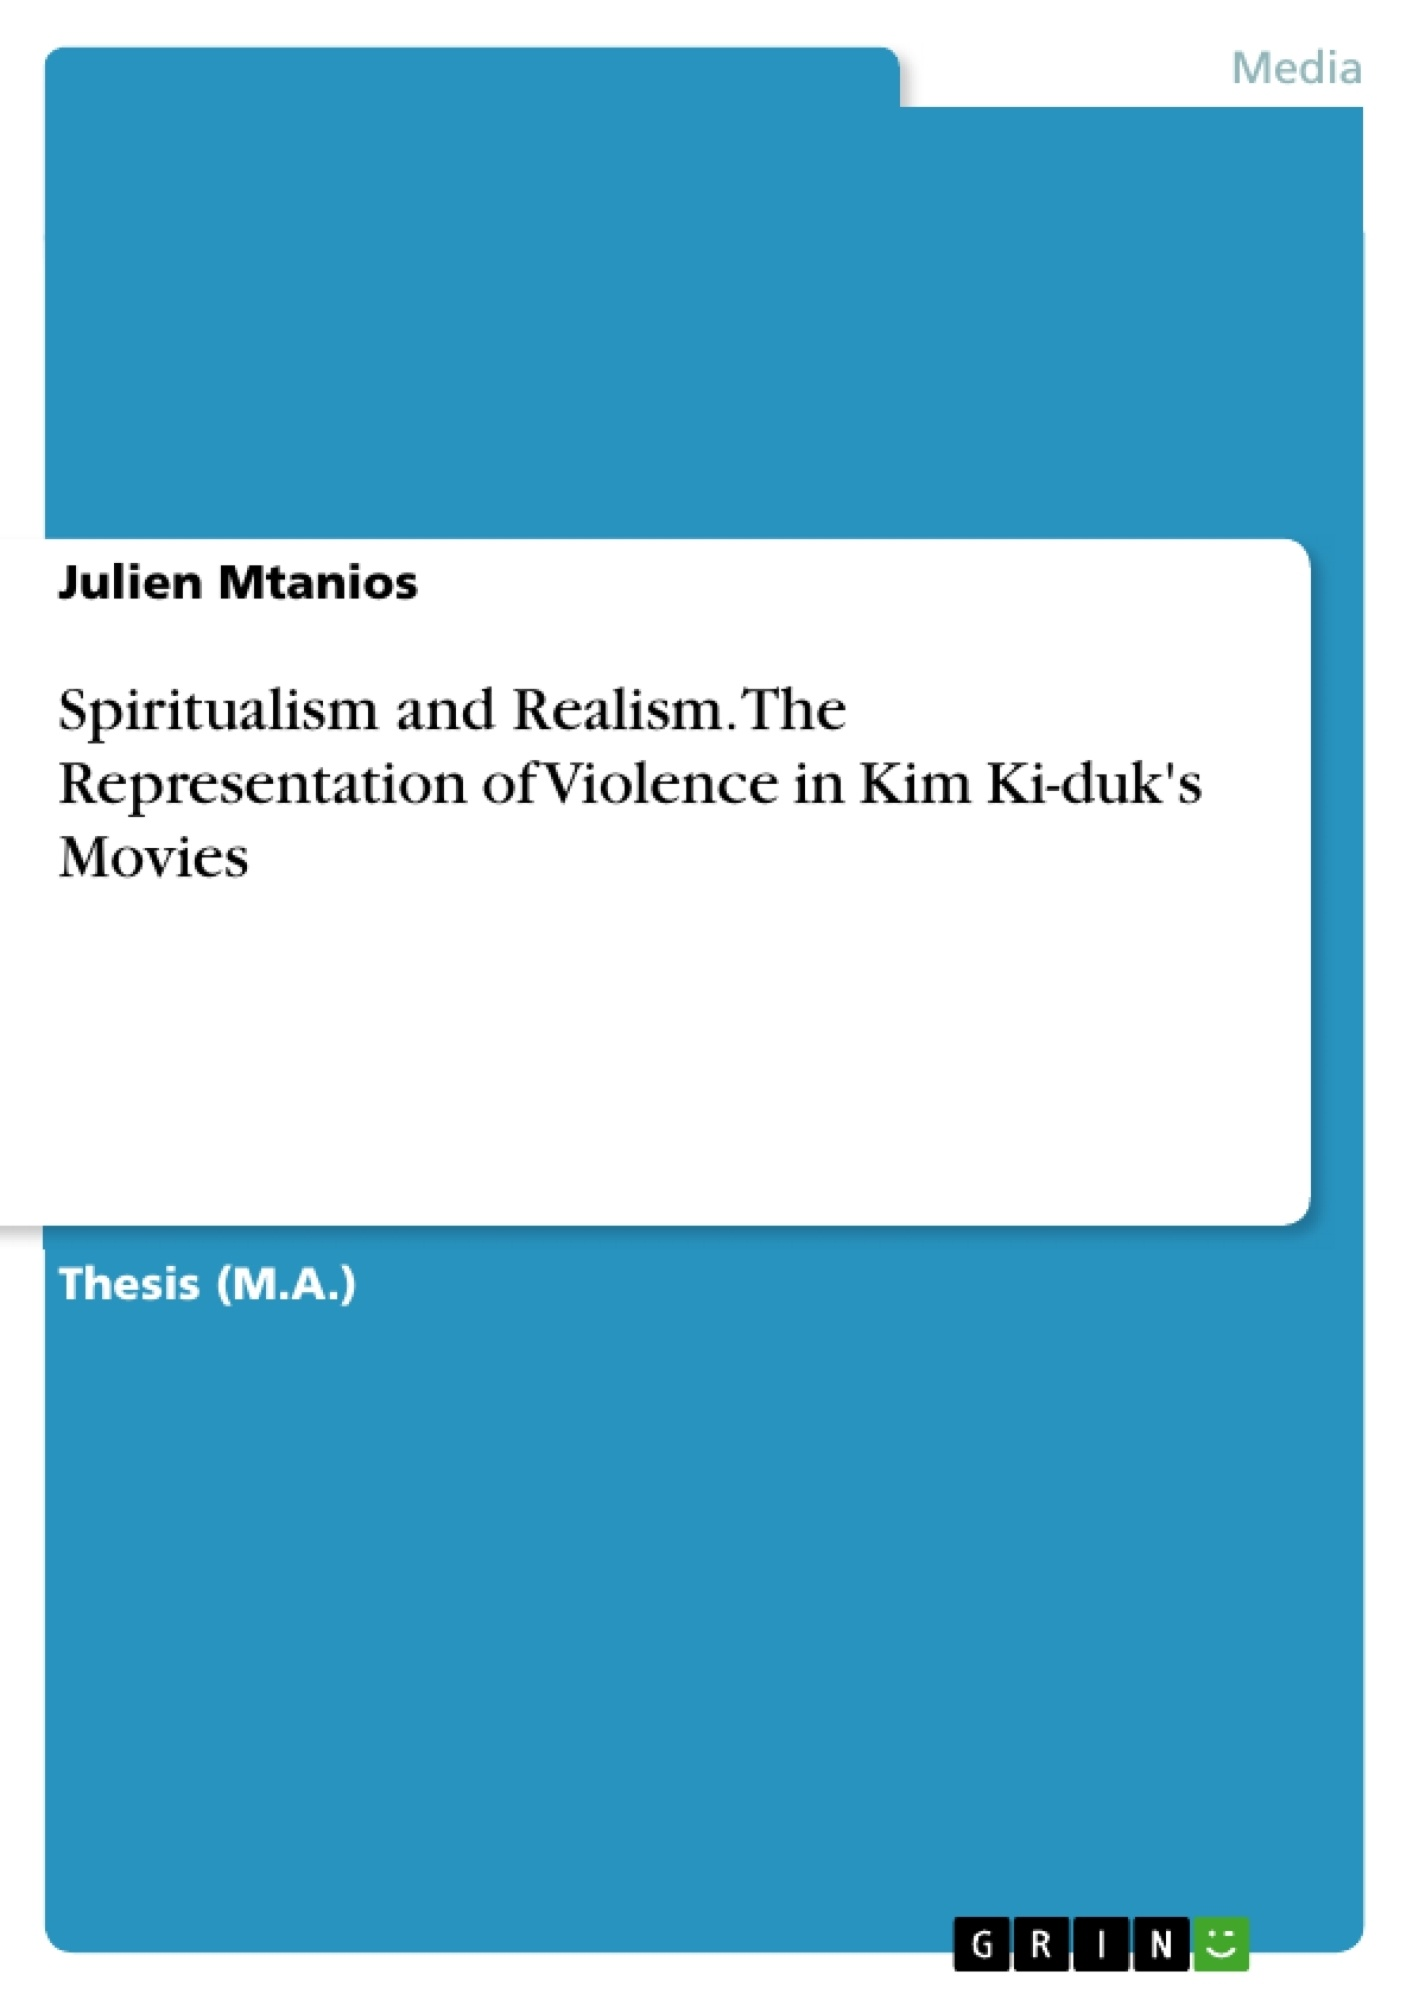 Title: Spiritualism and Realism. The Representation of Violence in Kim Ki-duk's Movies